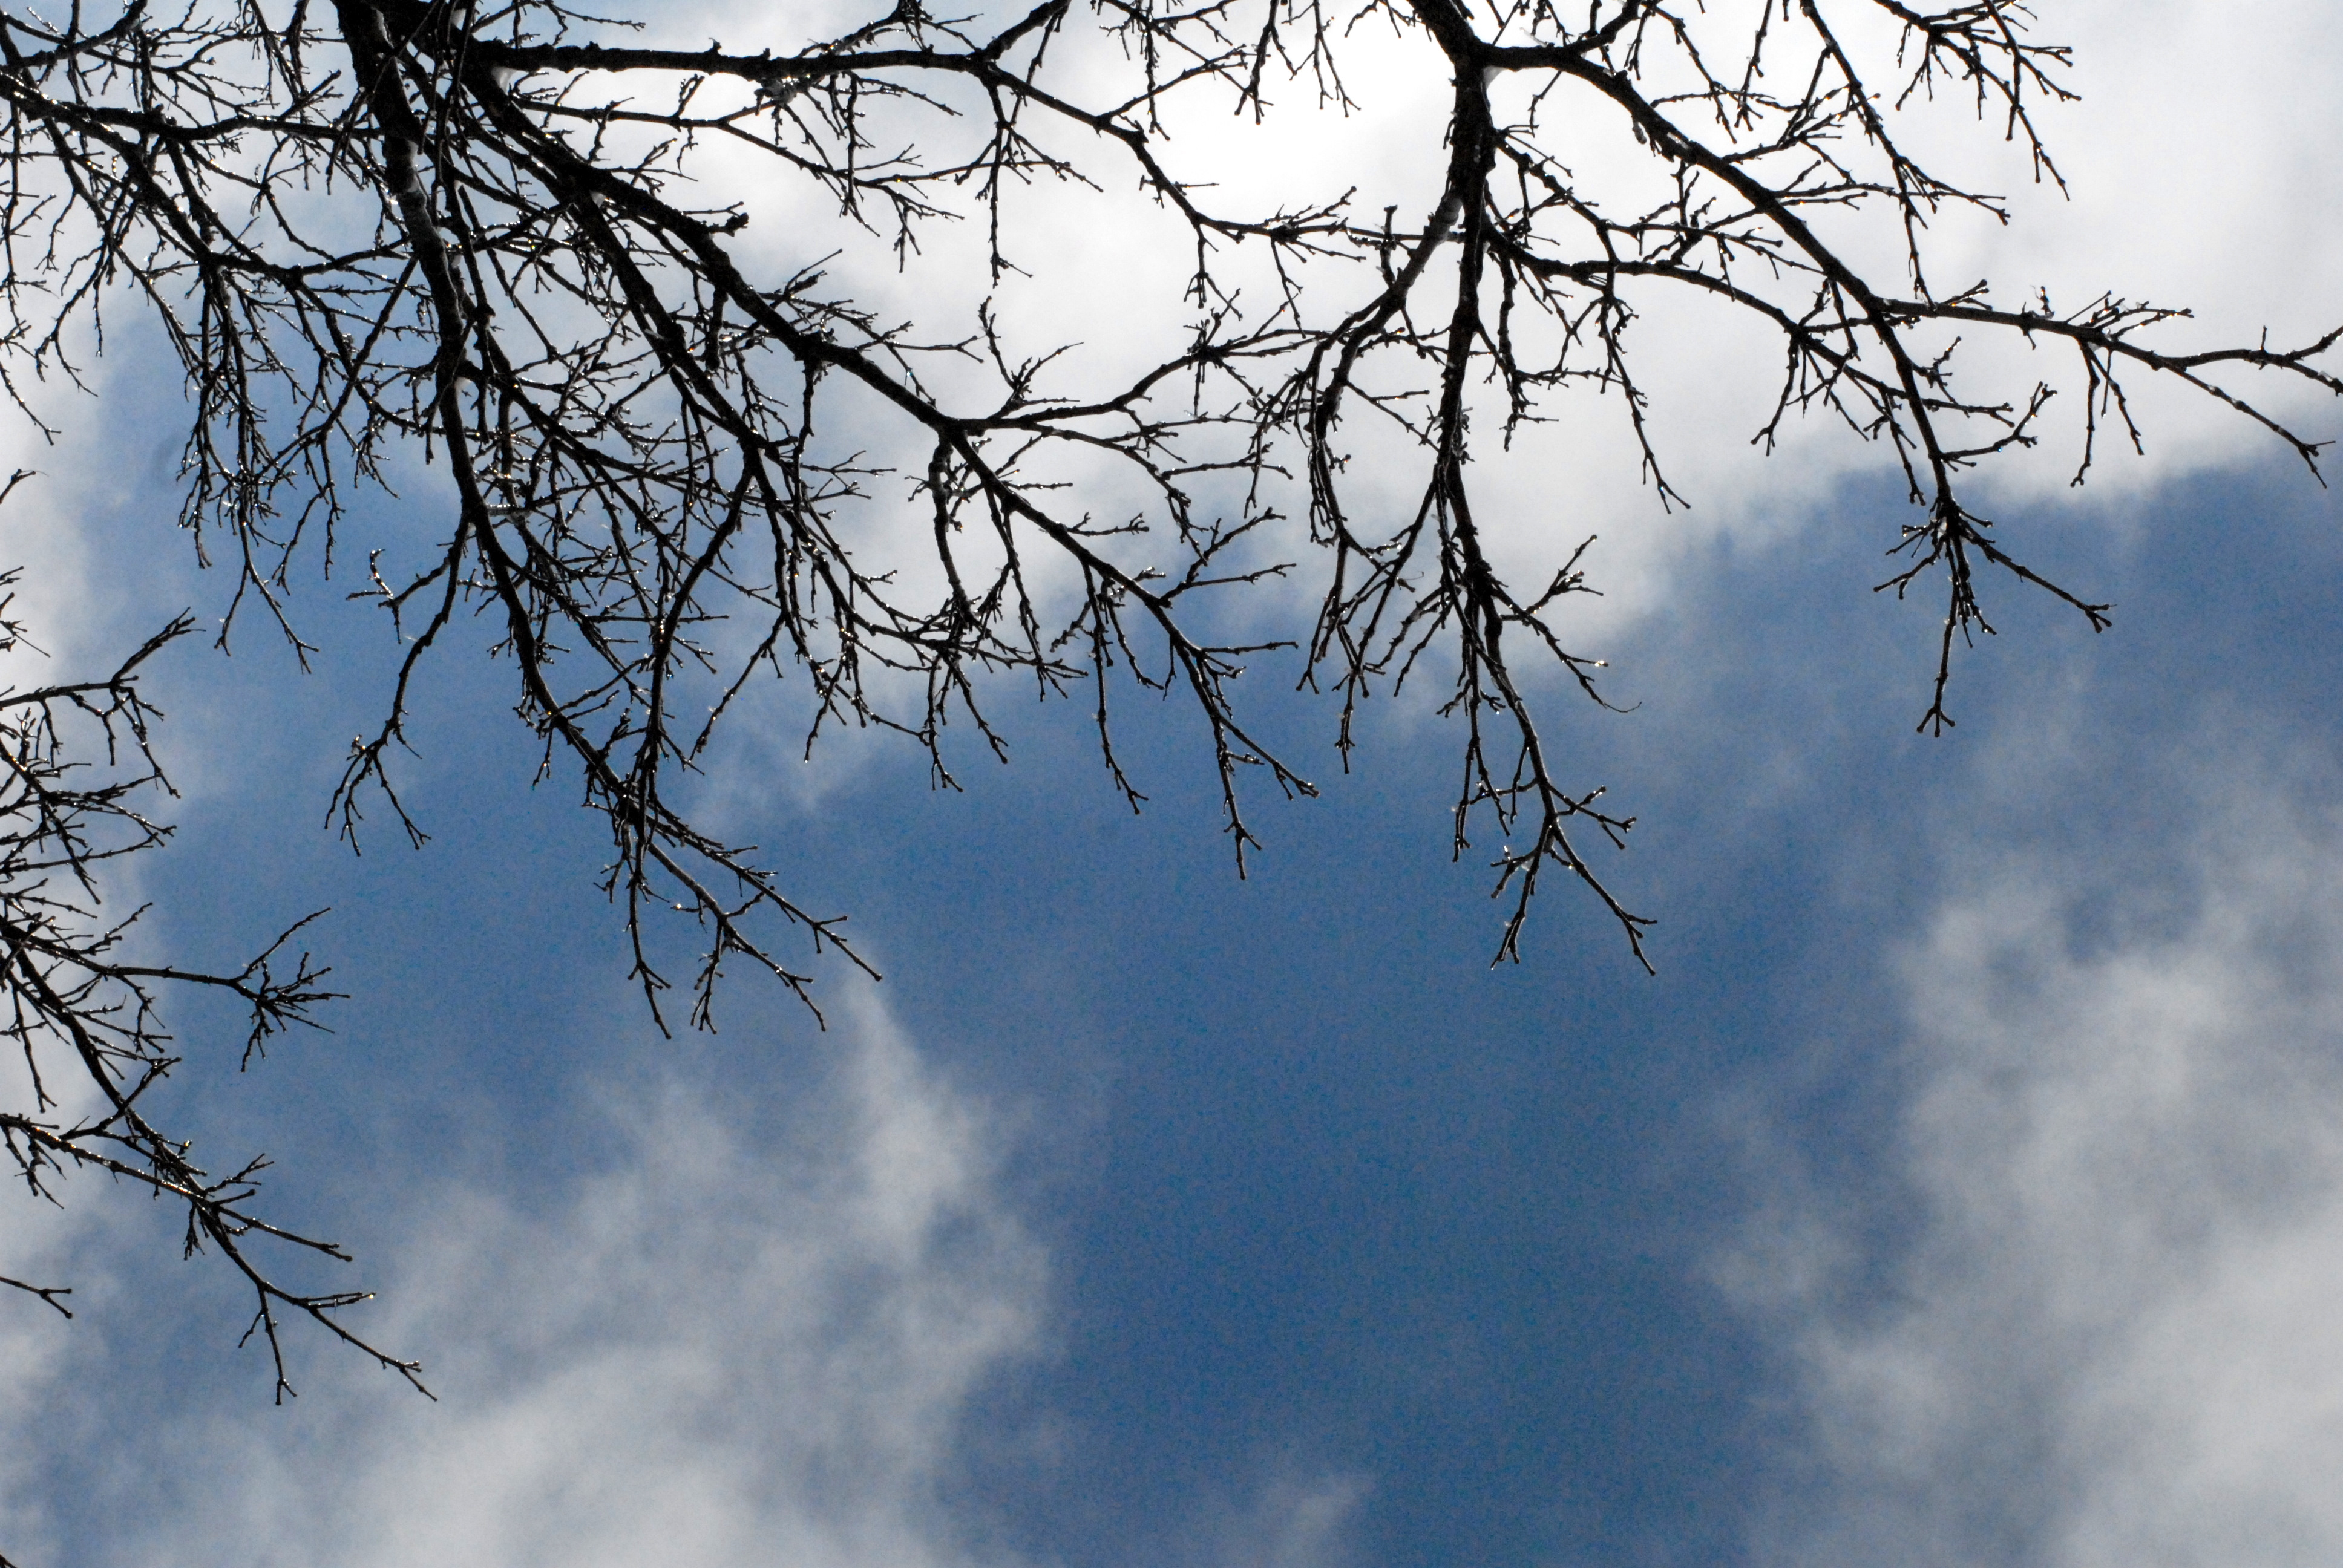 I Looked Up and The Sky Was Blue: What I Want vs. What INeed